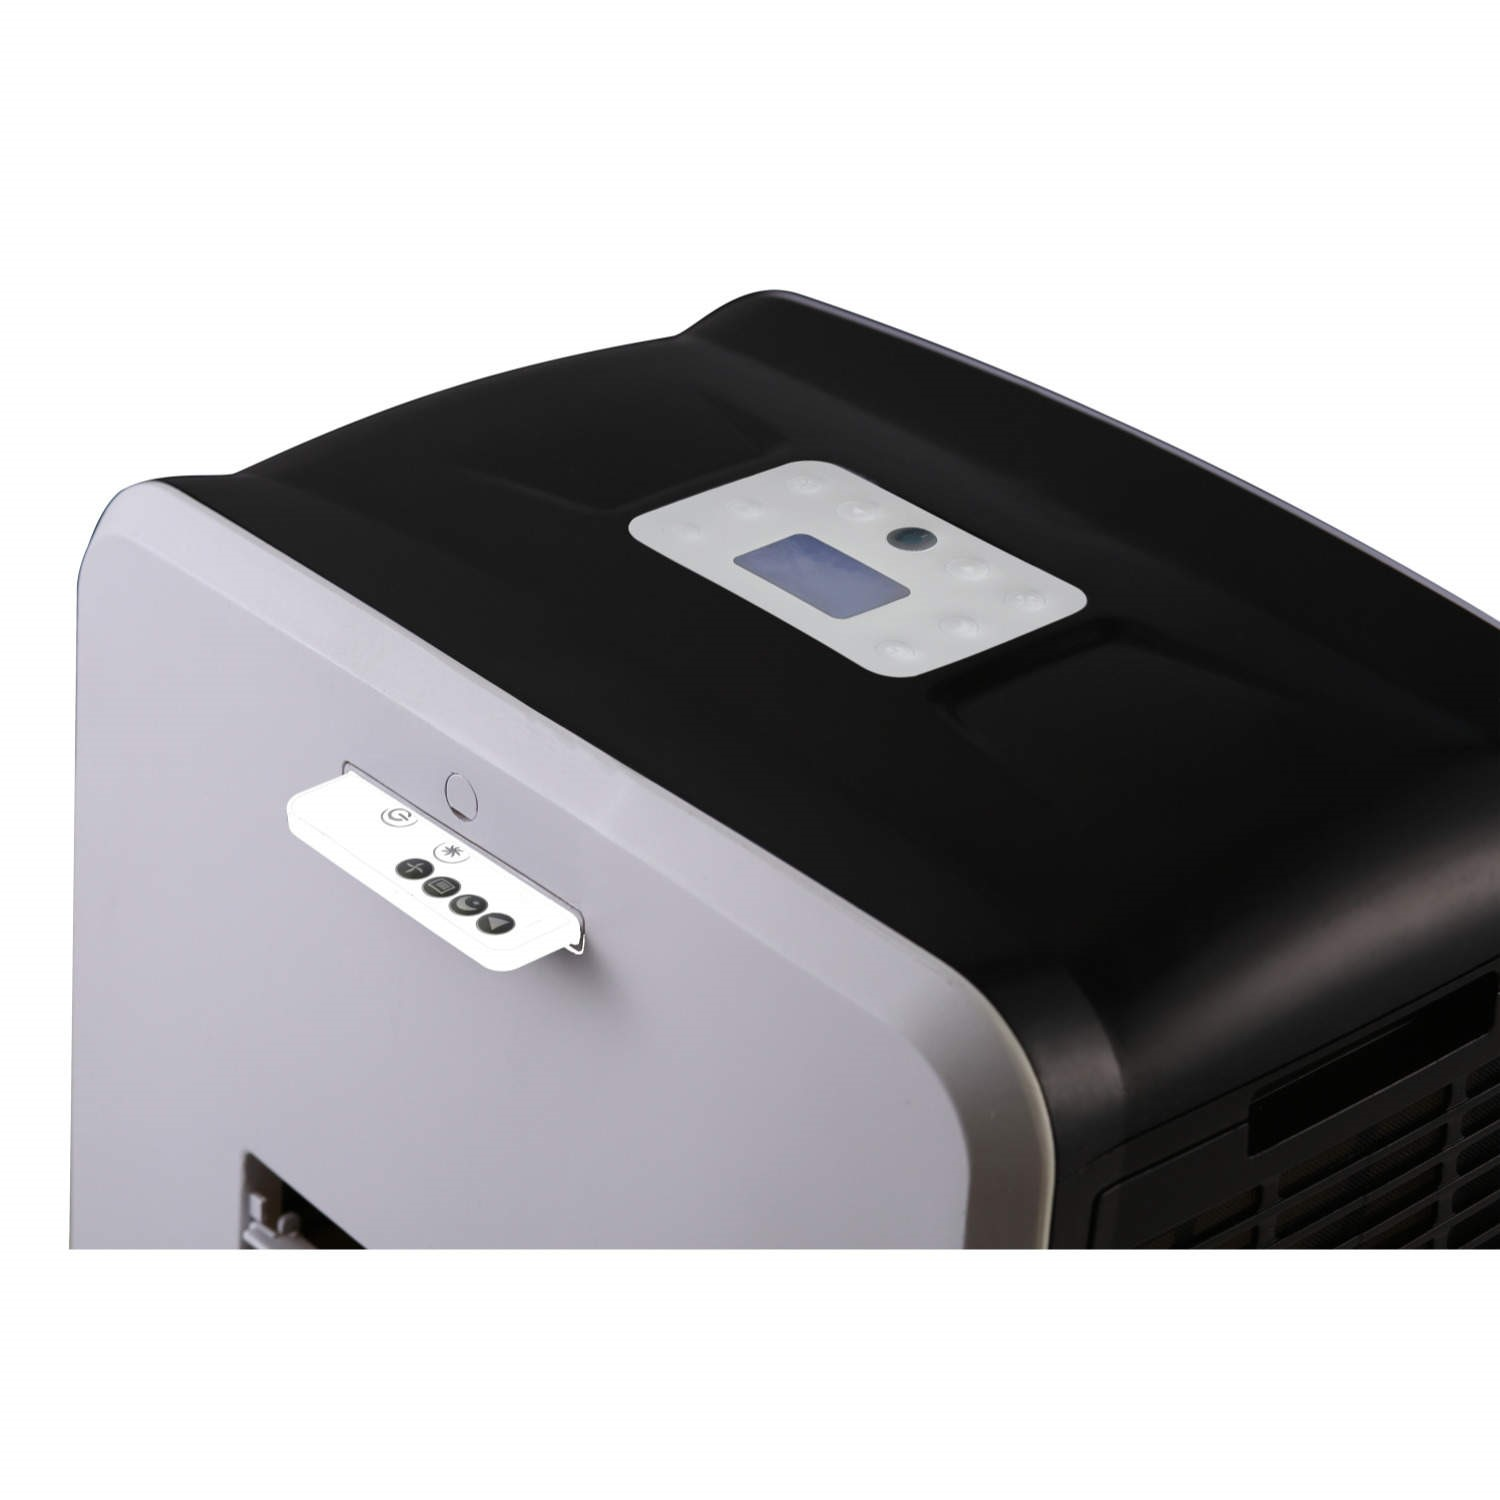 Beau ElectriQ 4000 BTU Portable Air Conditioner For Small Rooms Up To 15 Sqm